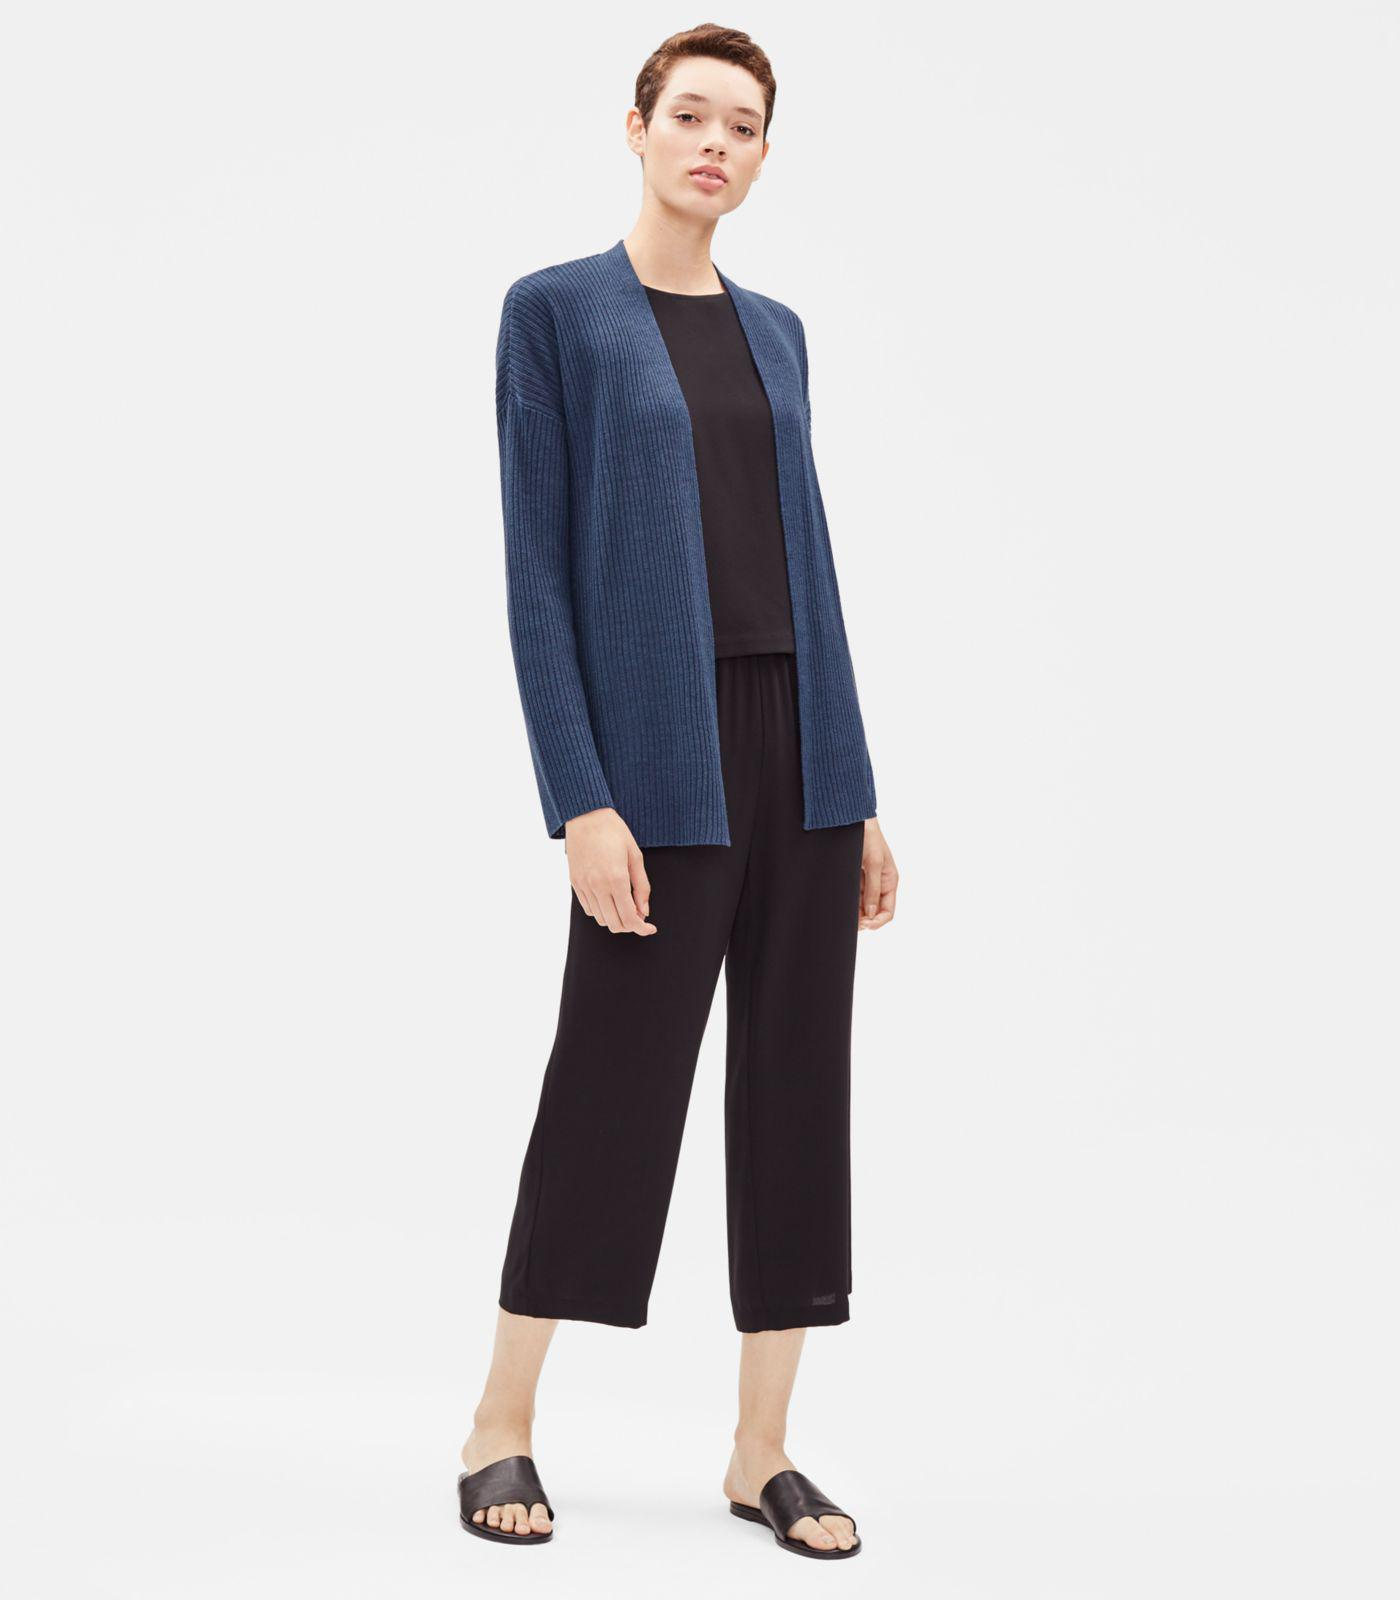 c45f2e8a851 Lyst - Eileen Fisher Organic Linen Ribbed Cardigan in Blue